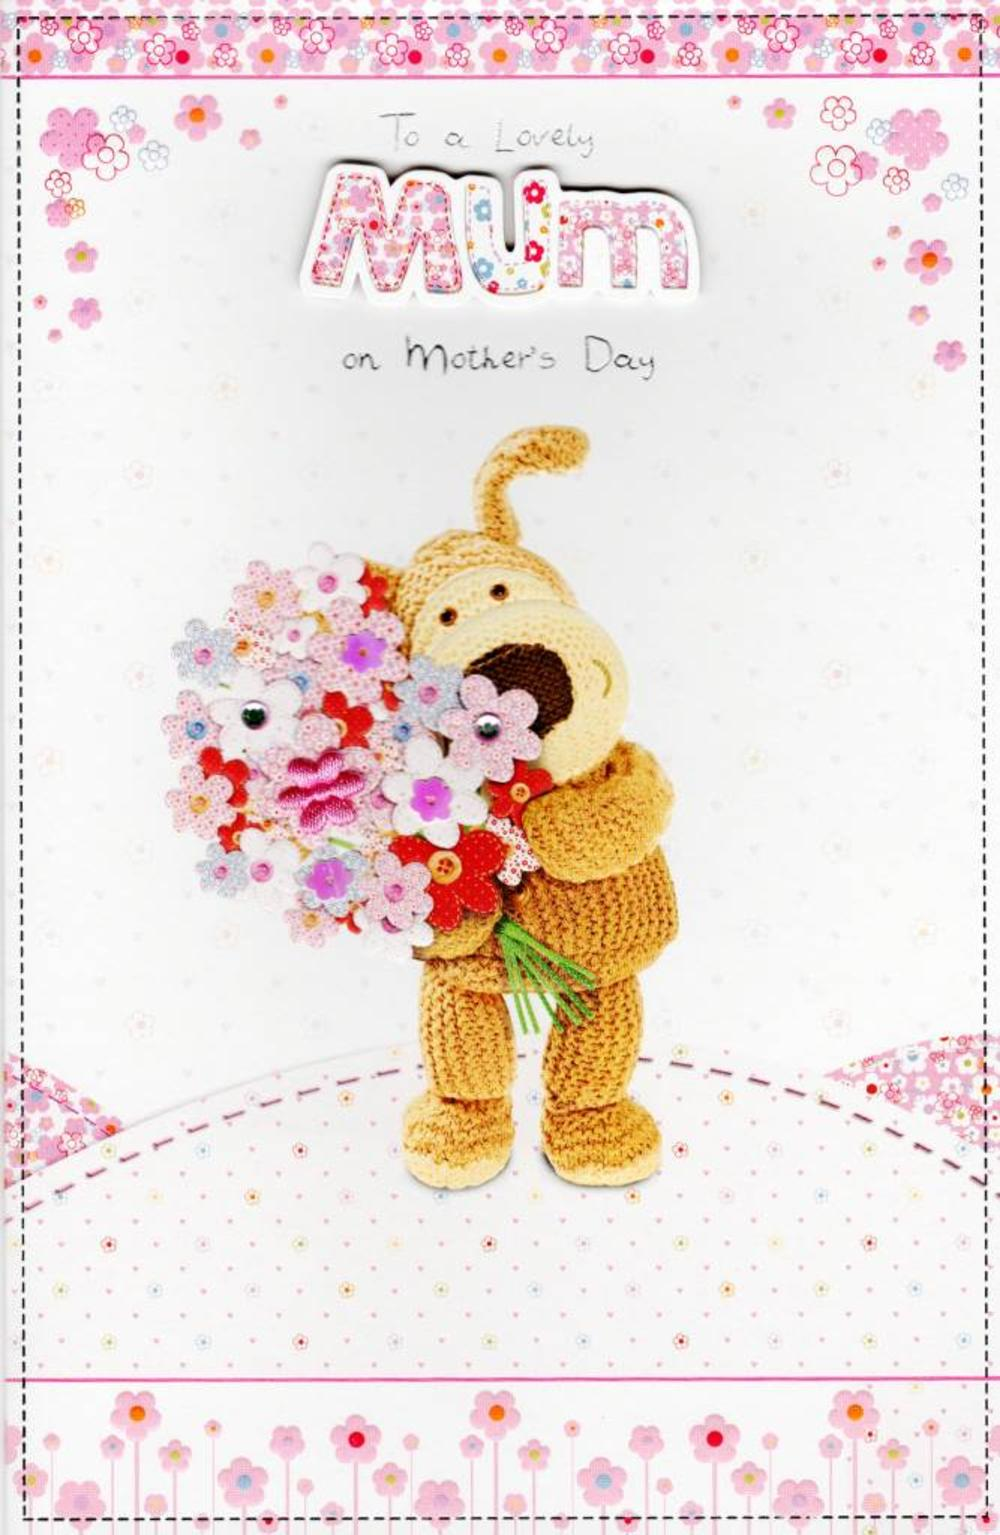 Lovely Mum Boofle Happy Mother's Day Greeting Card